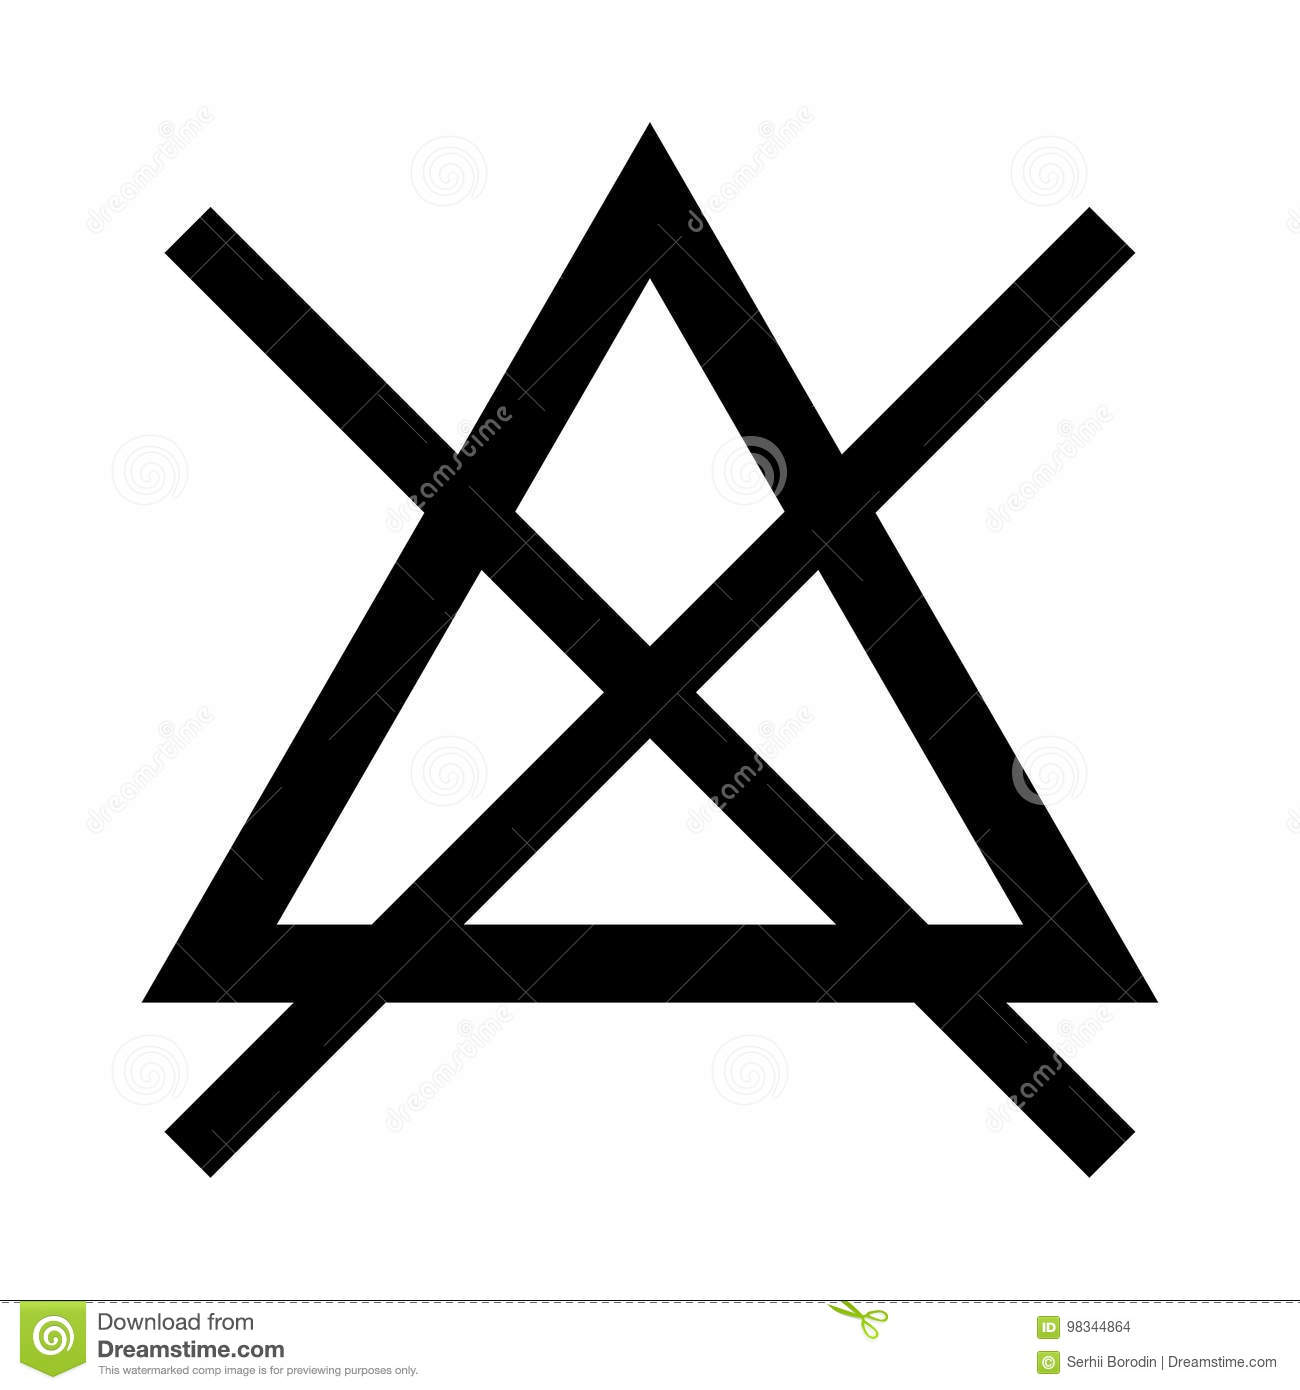 Symbol do not bleach black color icon stock vector symbol do not bleach black color icon biocorpaavc Choice Image